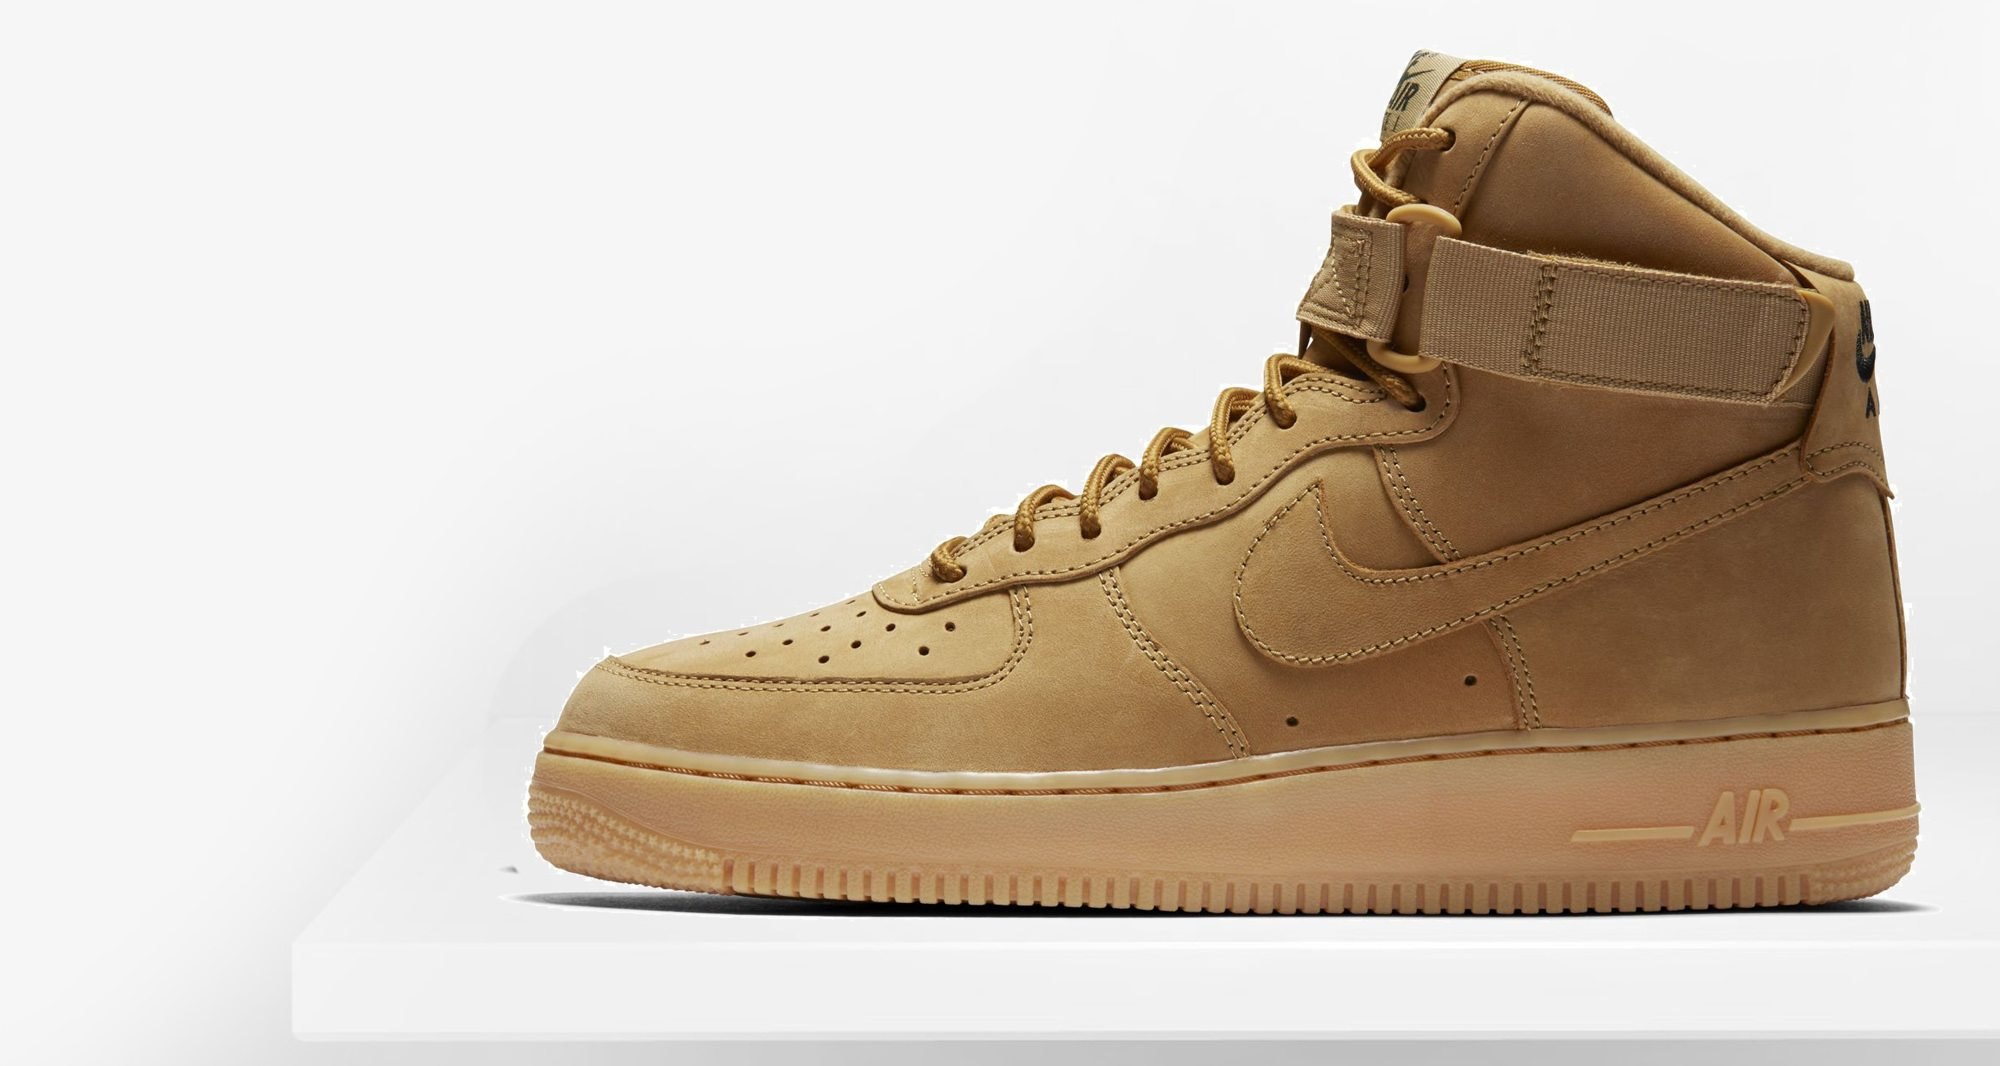 Lv8 Release Air Nice Flax 1 Date Kicks Force Nike High vIYq6qw